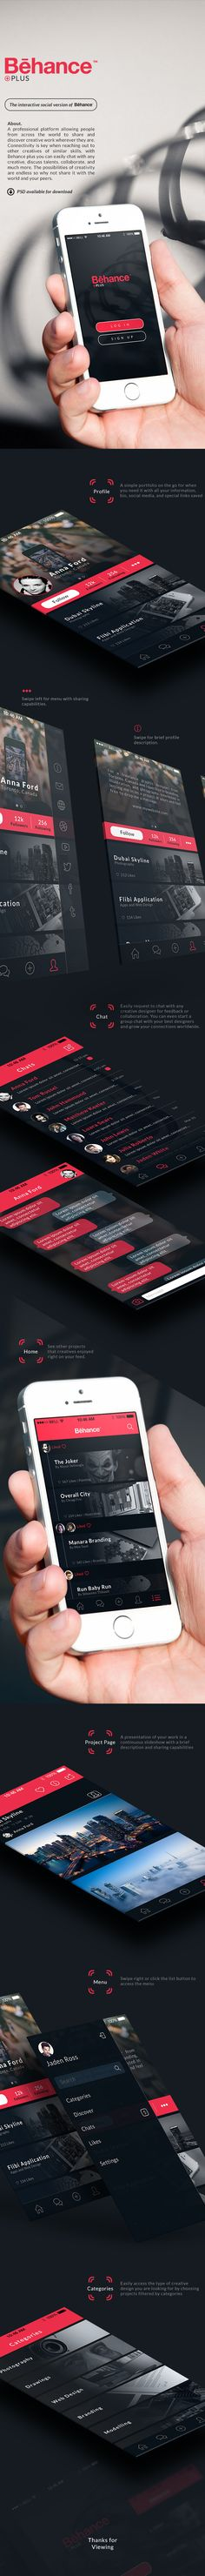 Behance Plus iPhone App on Behance